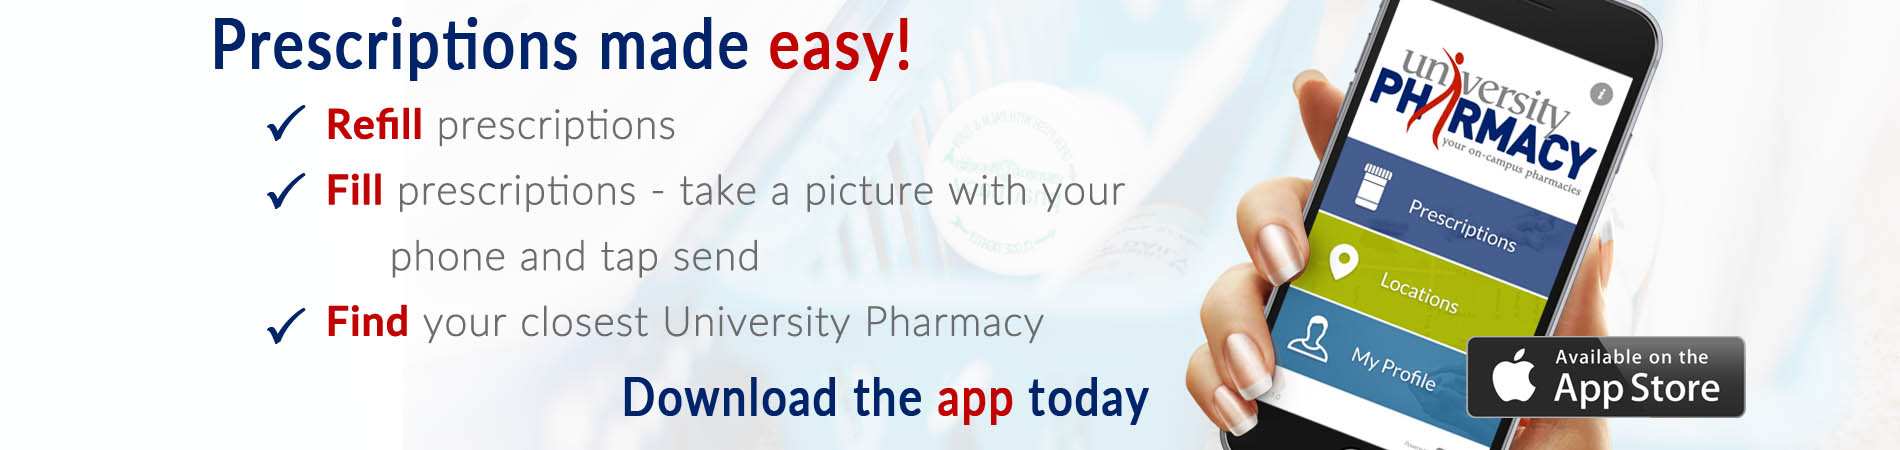 download the university pharmacy app today